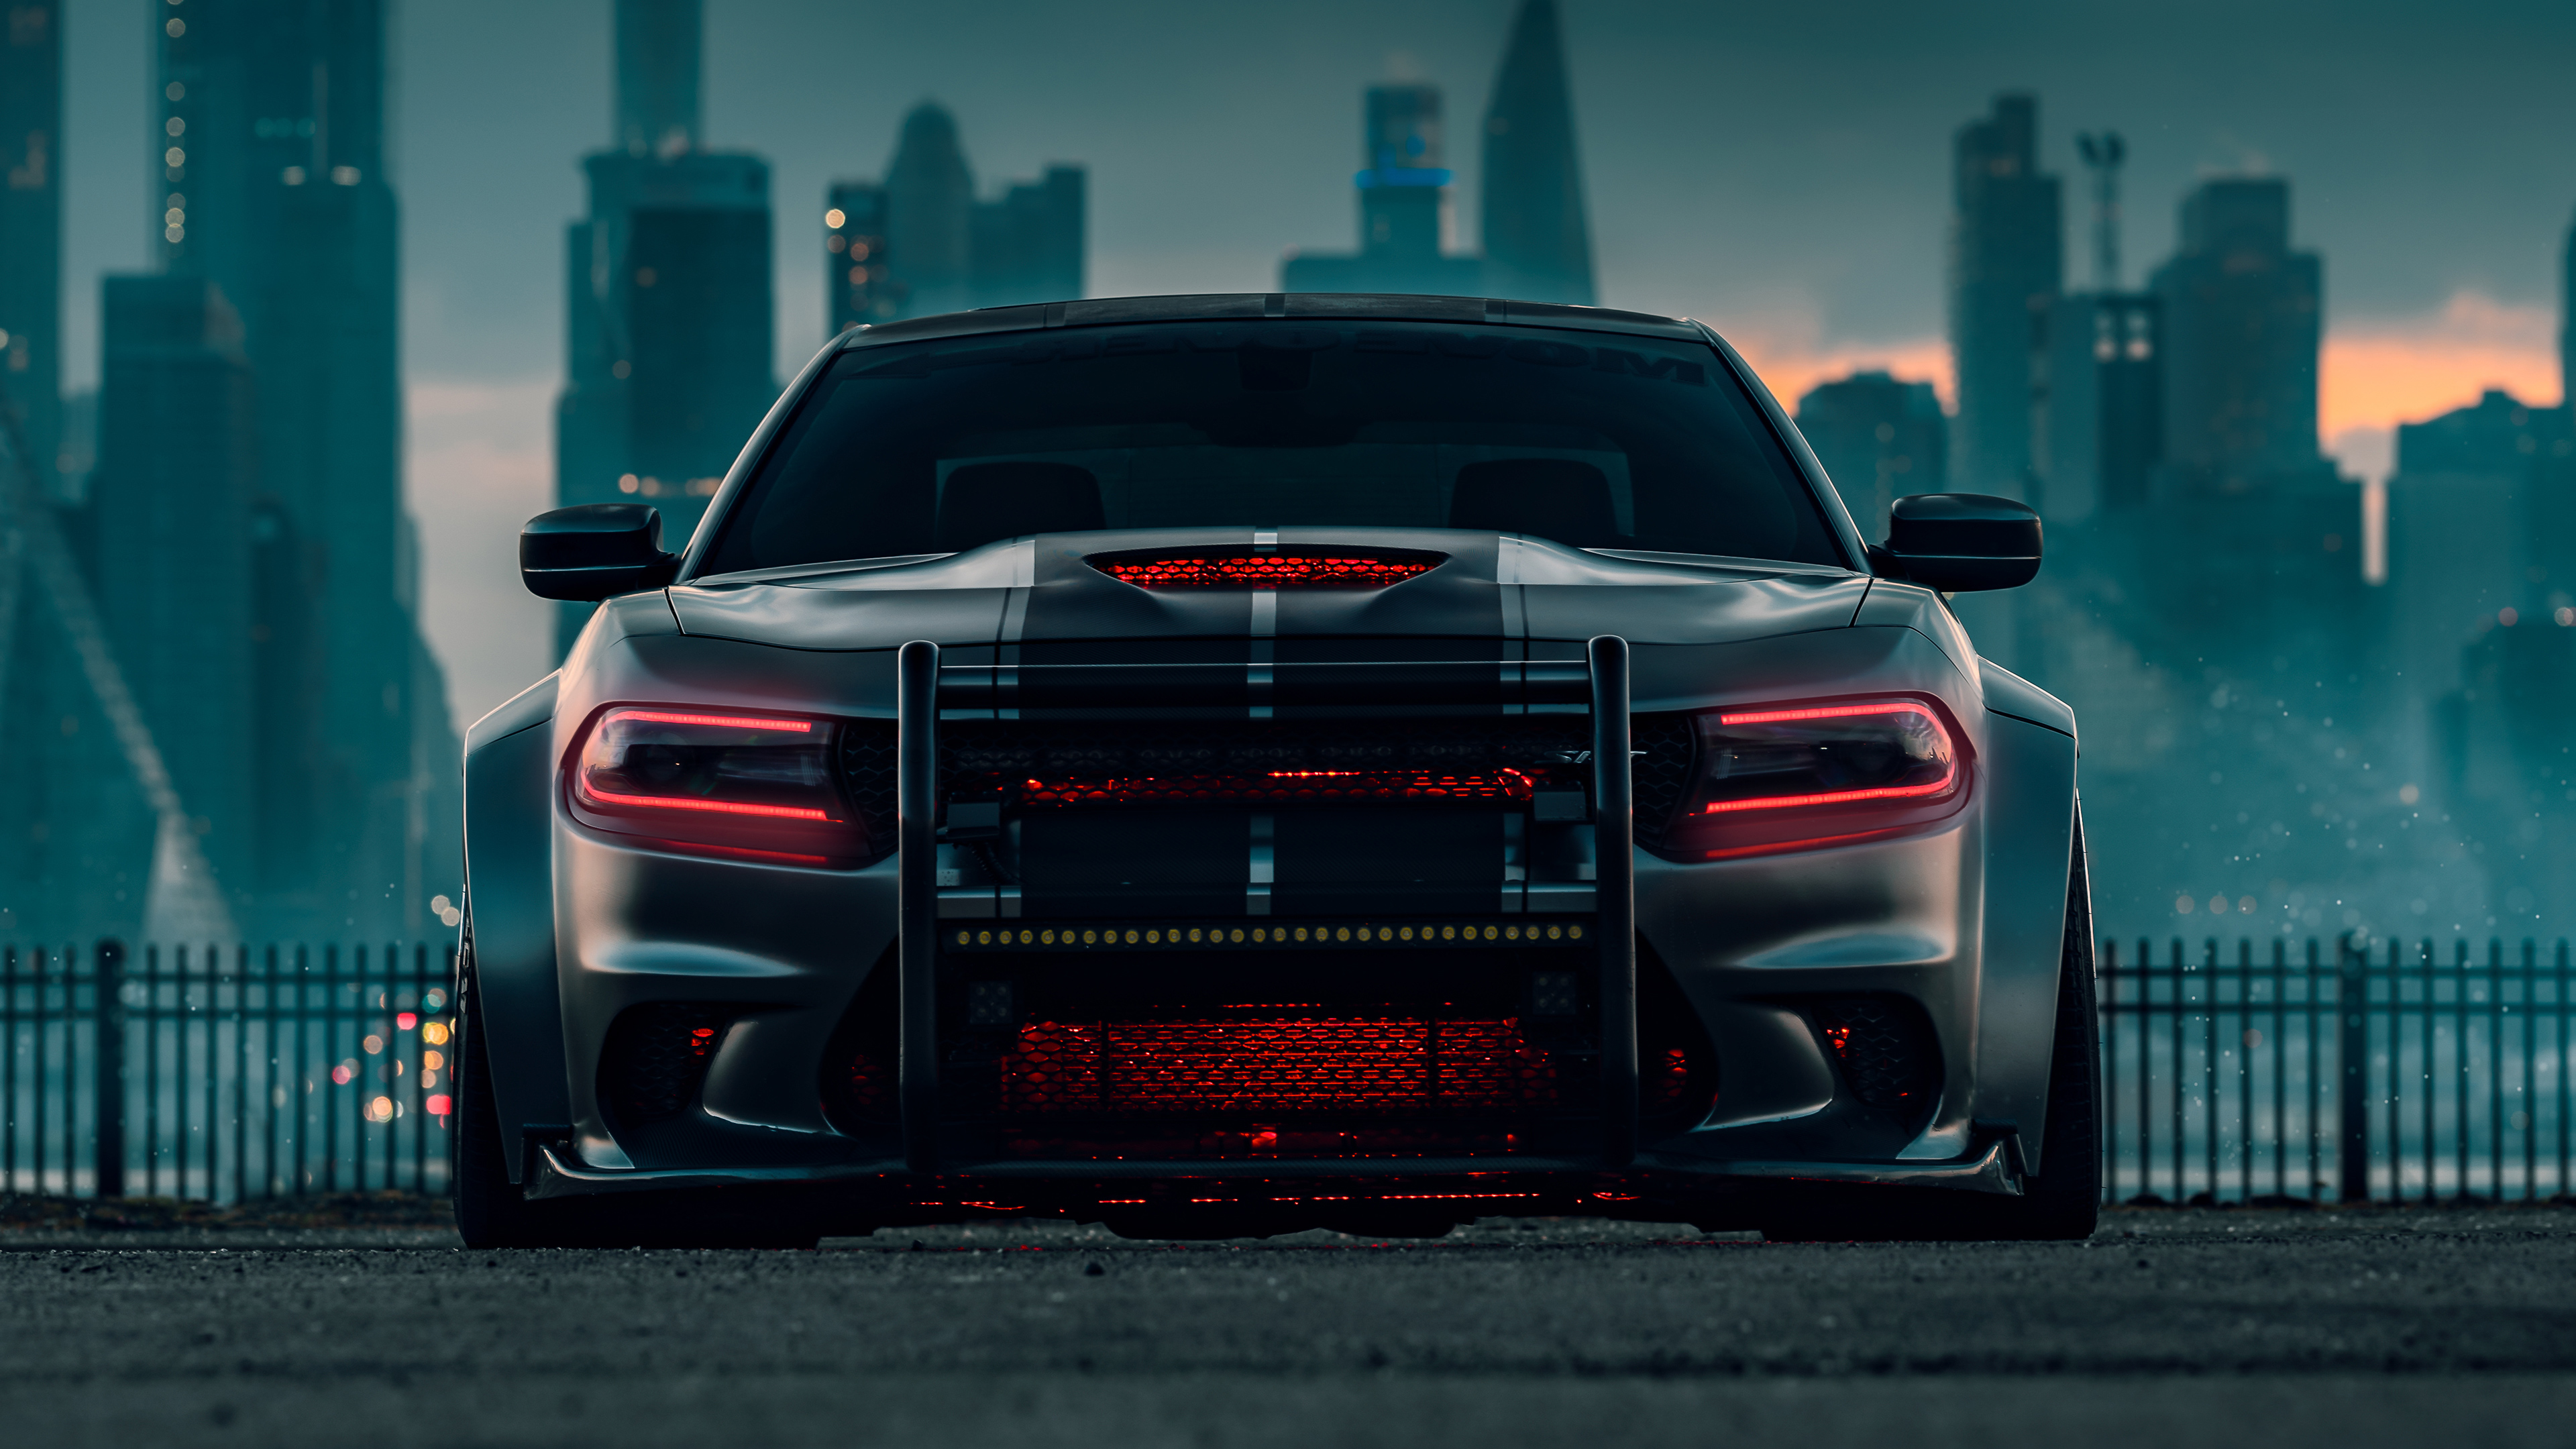 1440x900 Dodge Charger Srt Hellcat 2020 4k 1440x900 Resolution Hd 4k Wallpapers Images Backgrounds Photos And Pictures